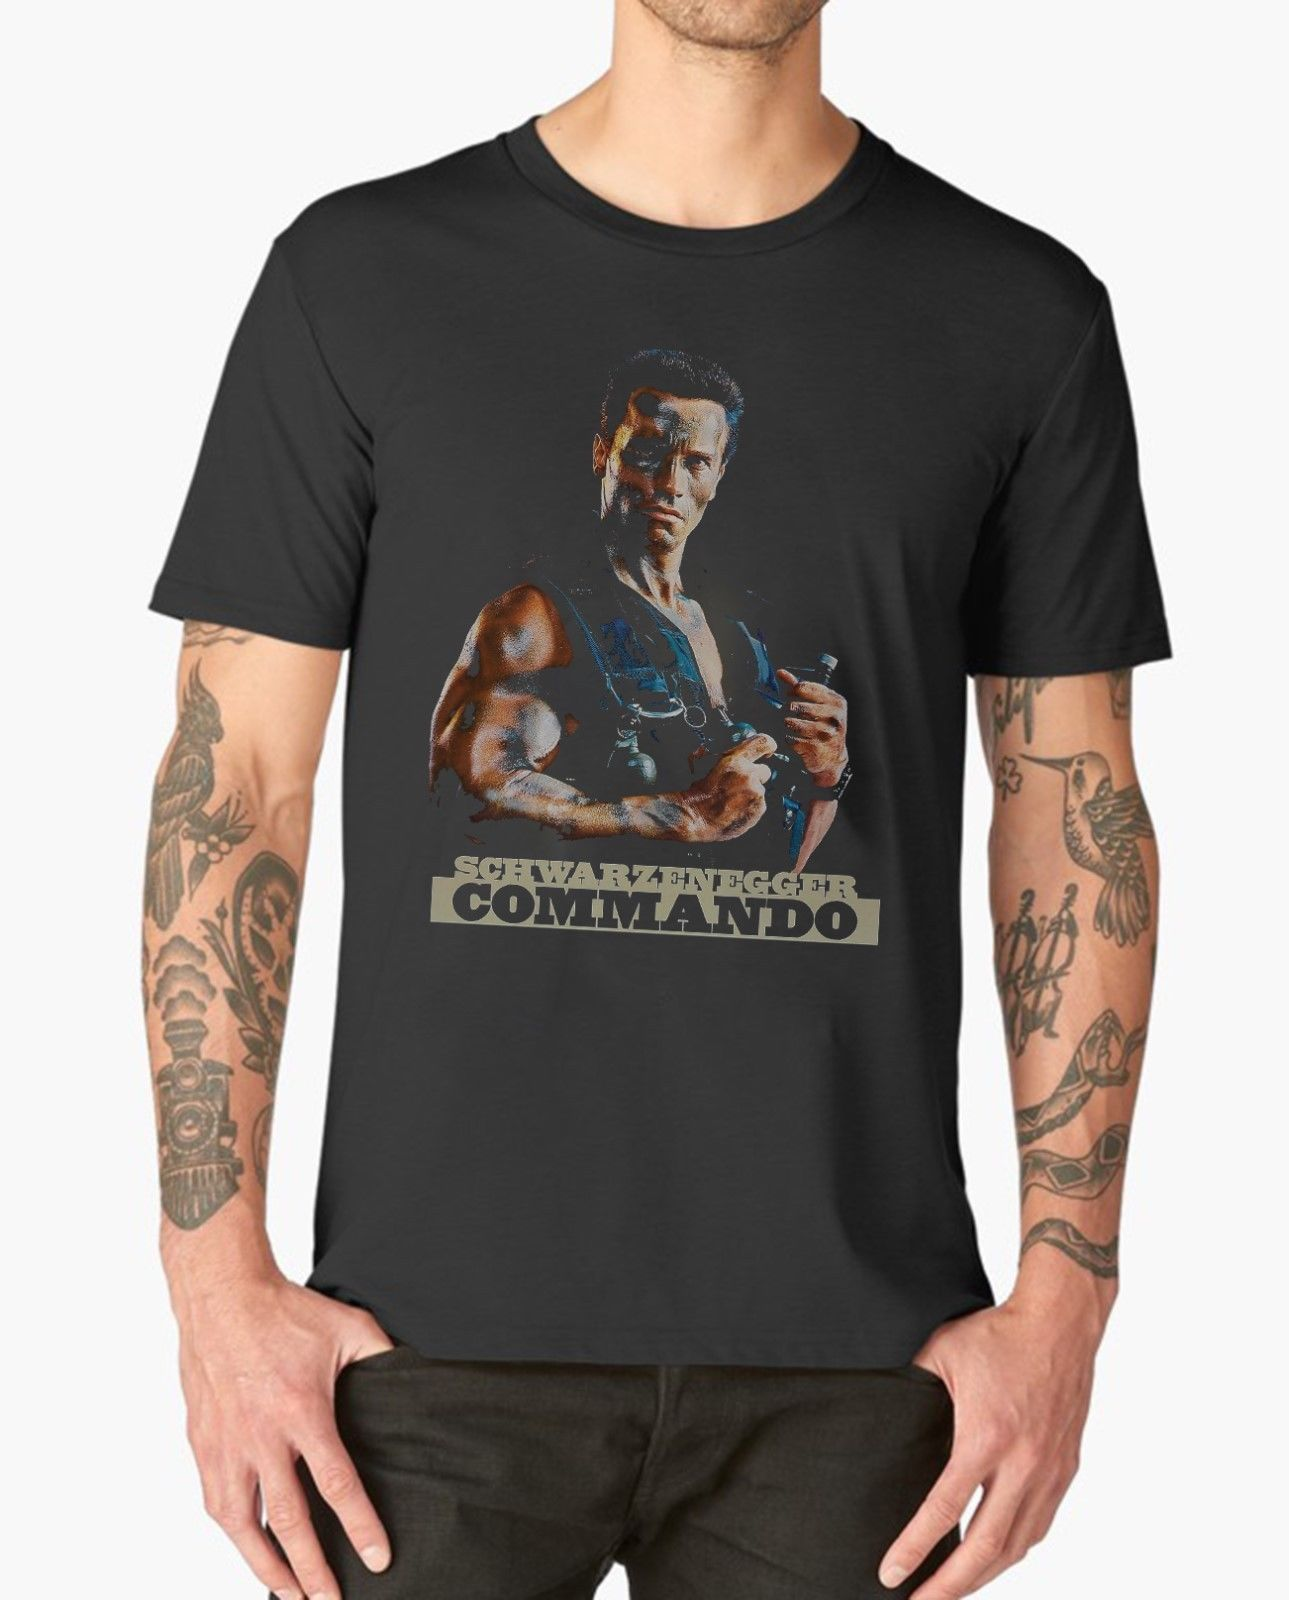 COMMANDO T SHIRT ARNOLD SCHWARZENEGGER <font><b>CULT</b></font> MOVIE FILM Cool Casual pride t shirt men Unisex New Fashion <font><b>tshirt</b></font> Loose image